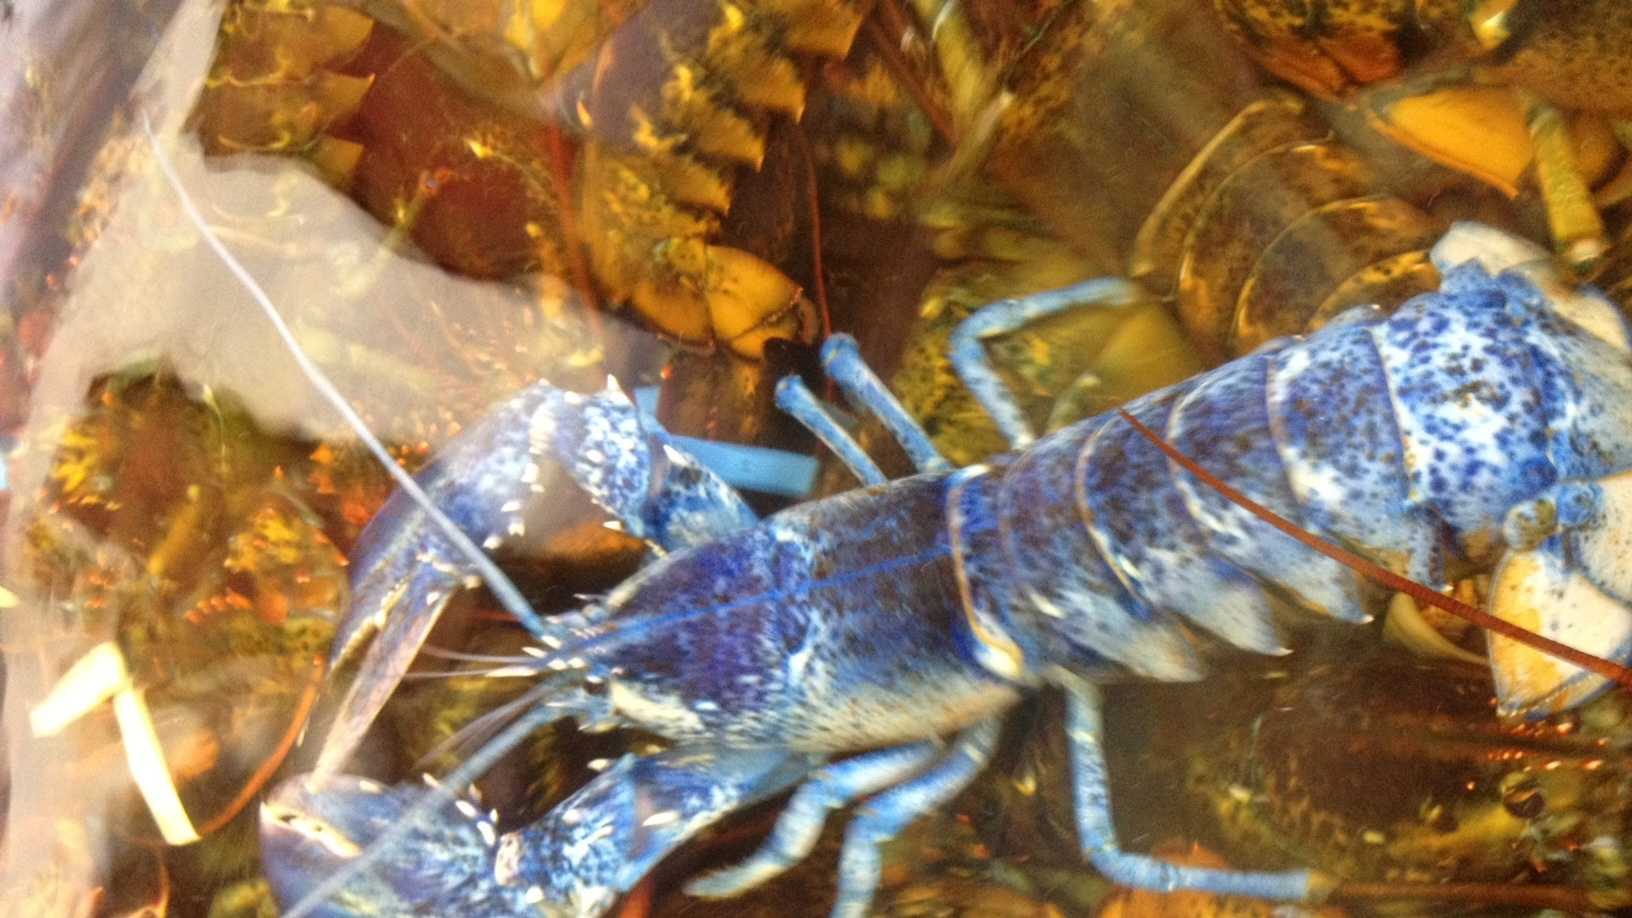 Rare blue lobster found off Rockport.